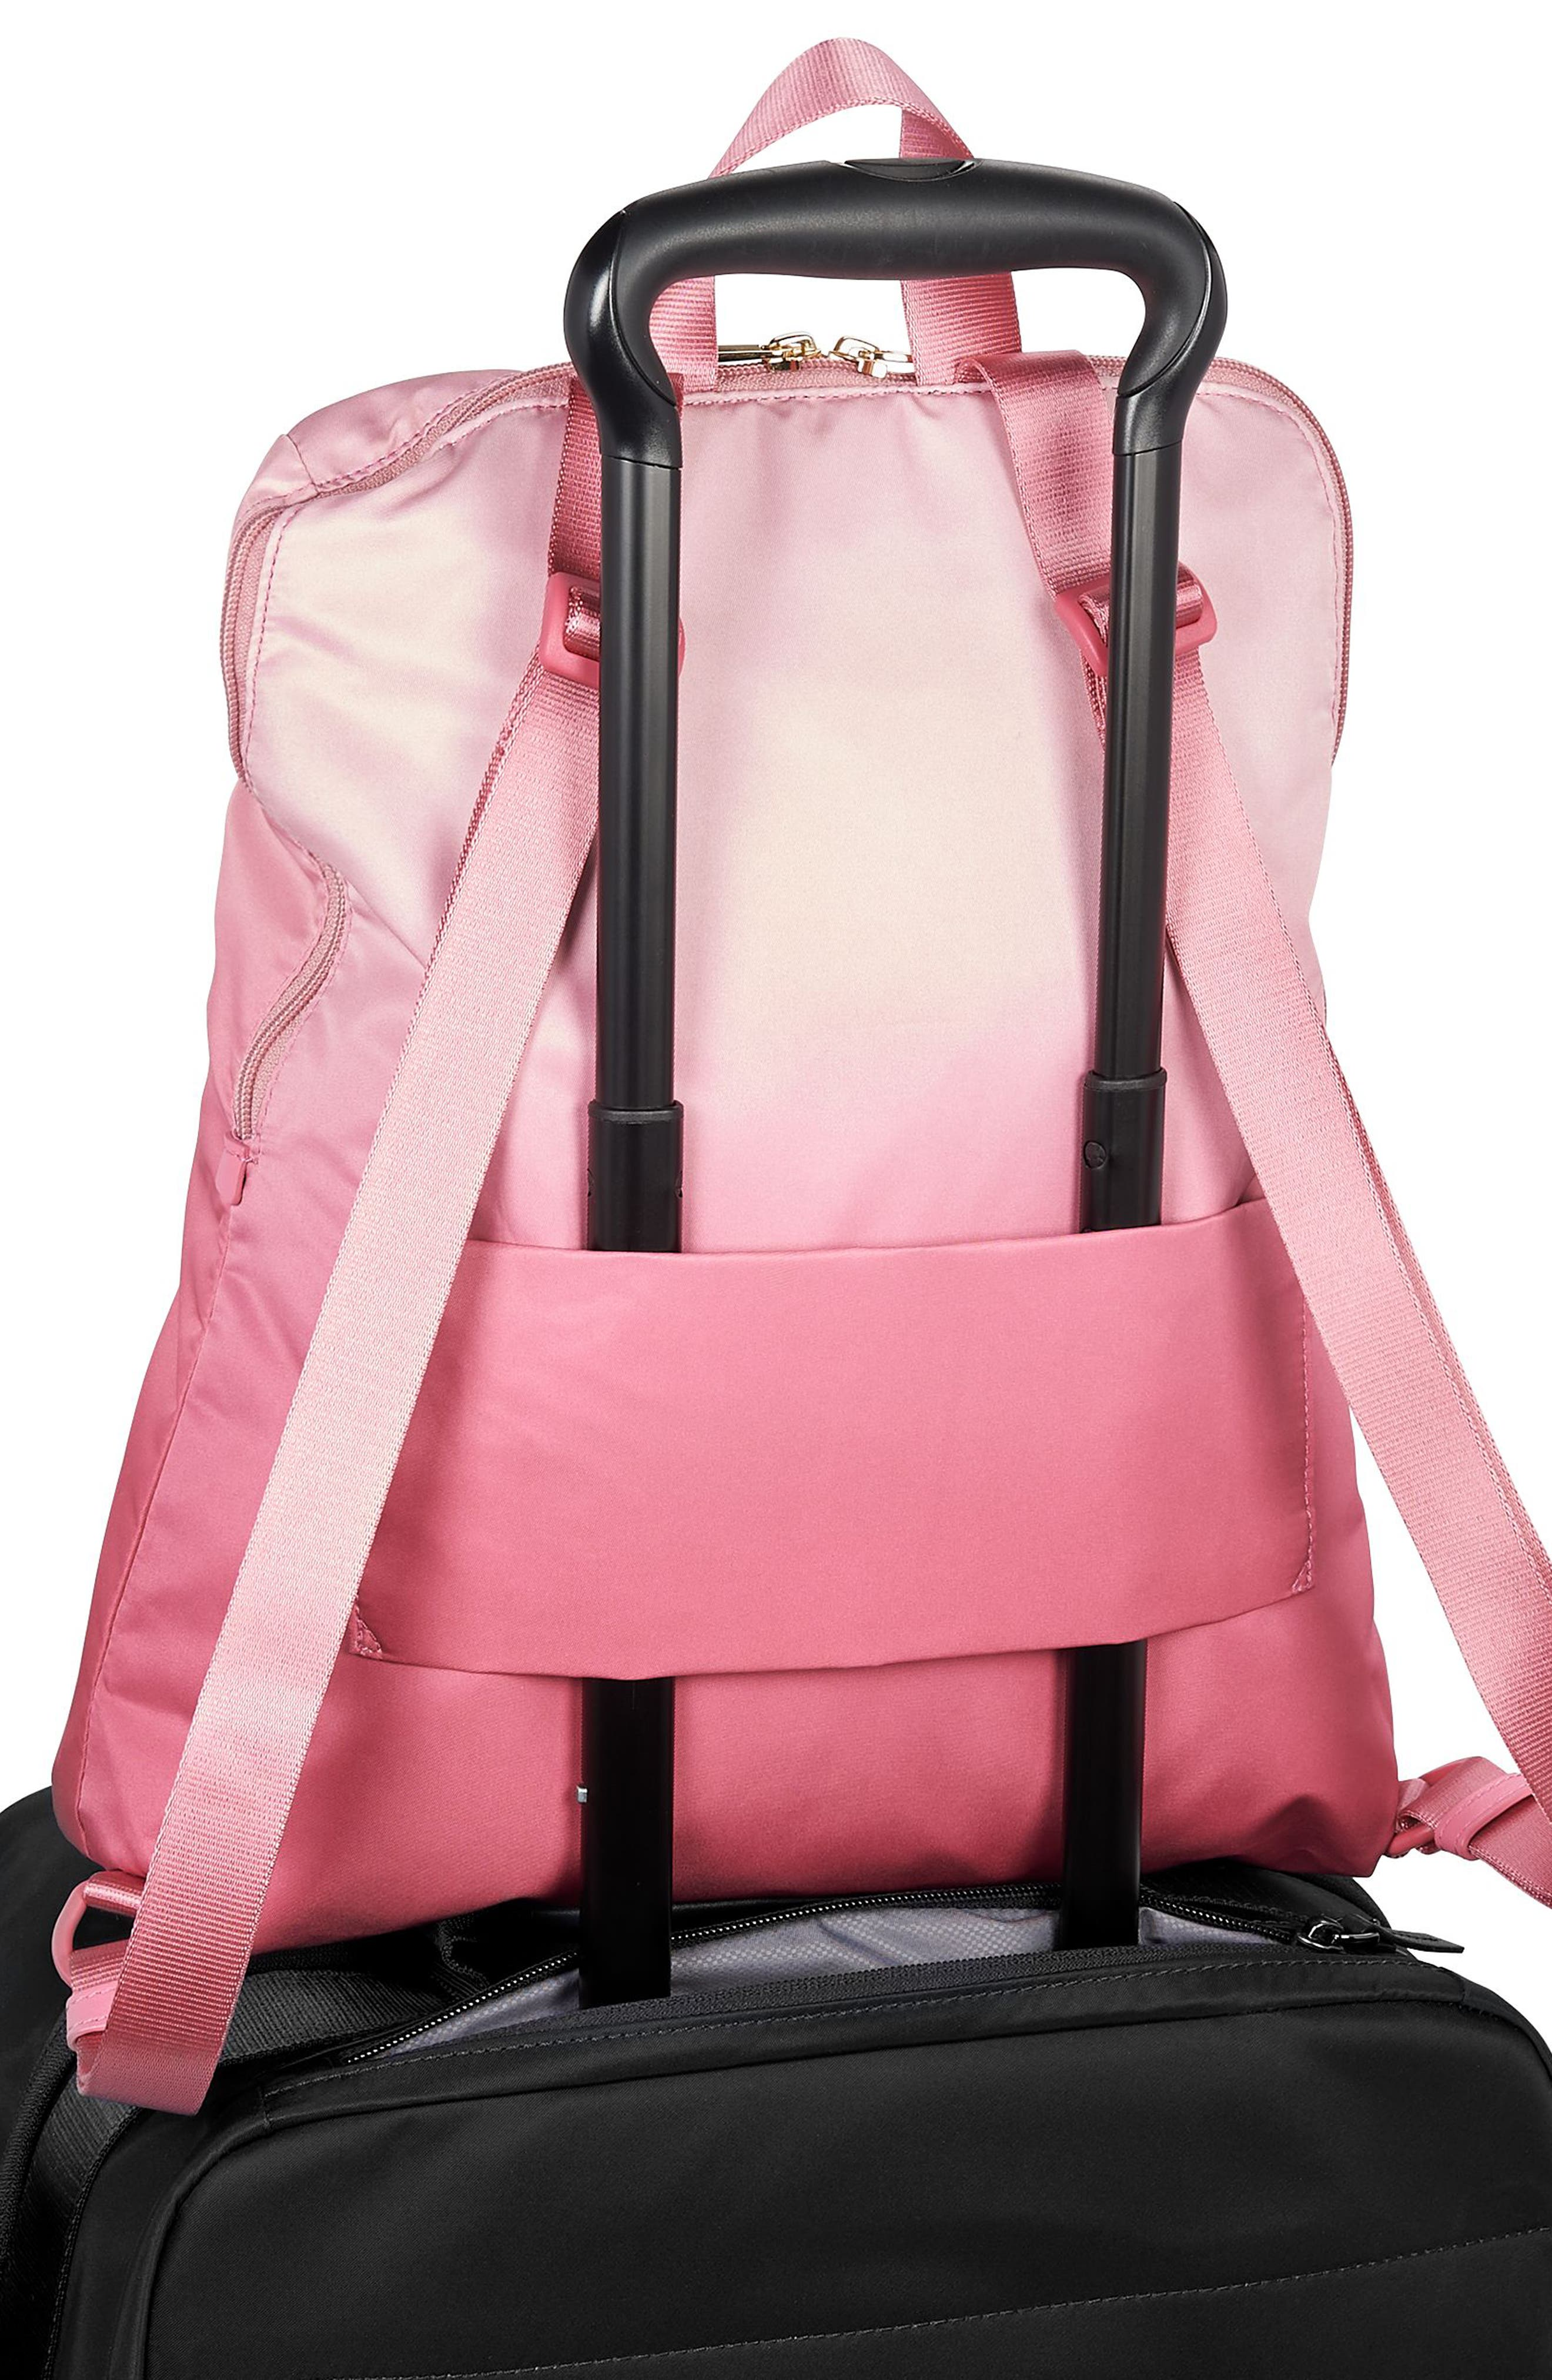 Voyageur - Just in Case Nylon Travel Backpack,                             Alternate thumbnail 5, color,                             PINK OMBRE